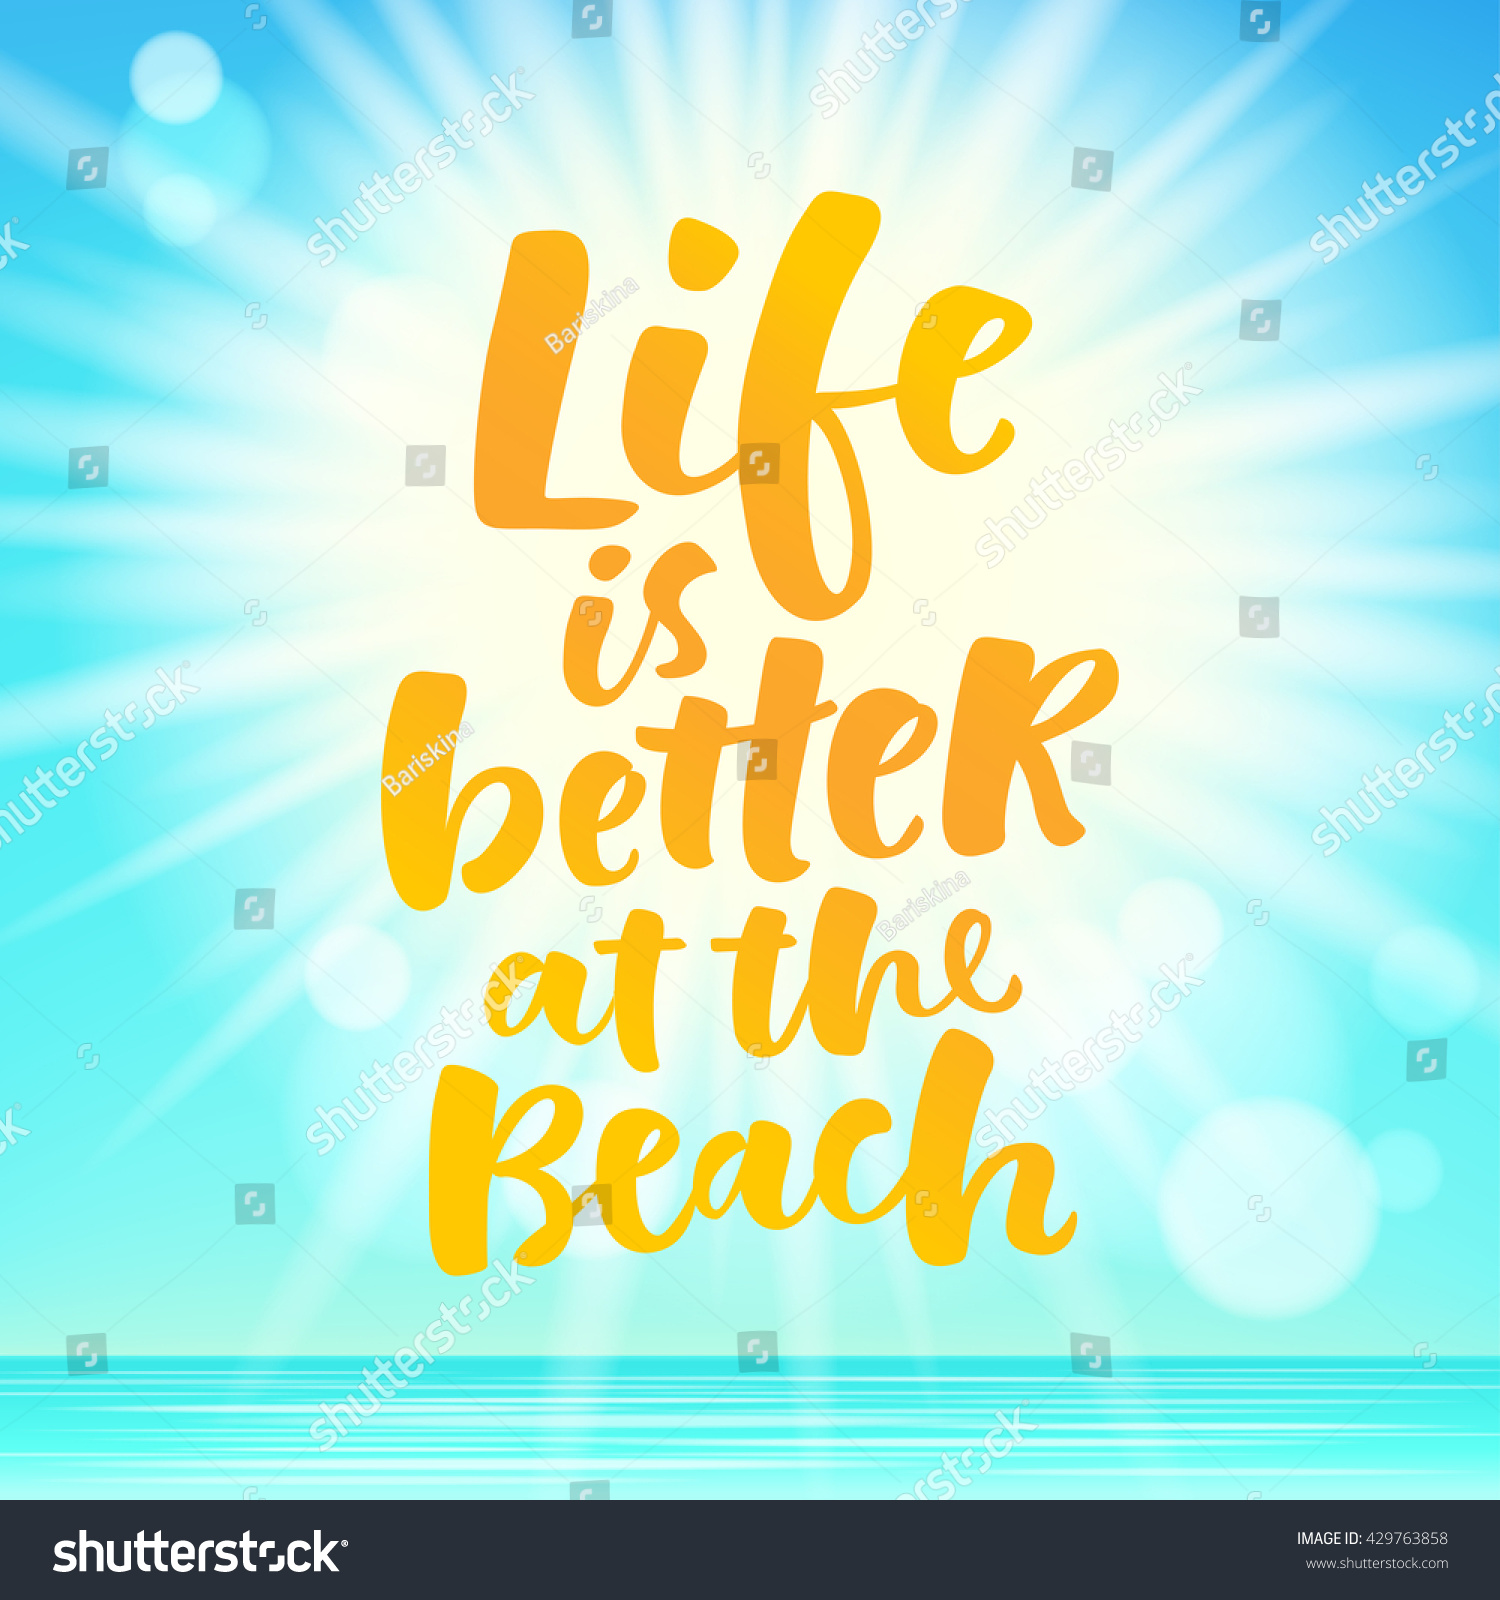 Life better beach lettering card hand stock vector 429763858 life is better at the beach lettering card hand drawn ink illustration phrase for prints kristyandbryce Gallery